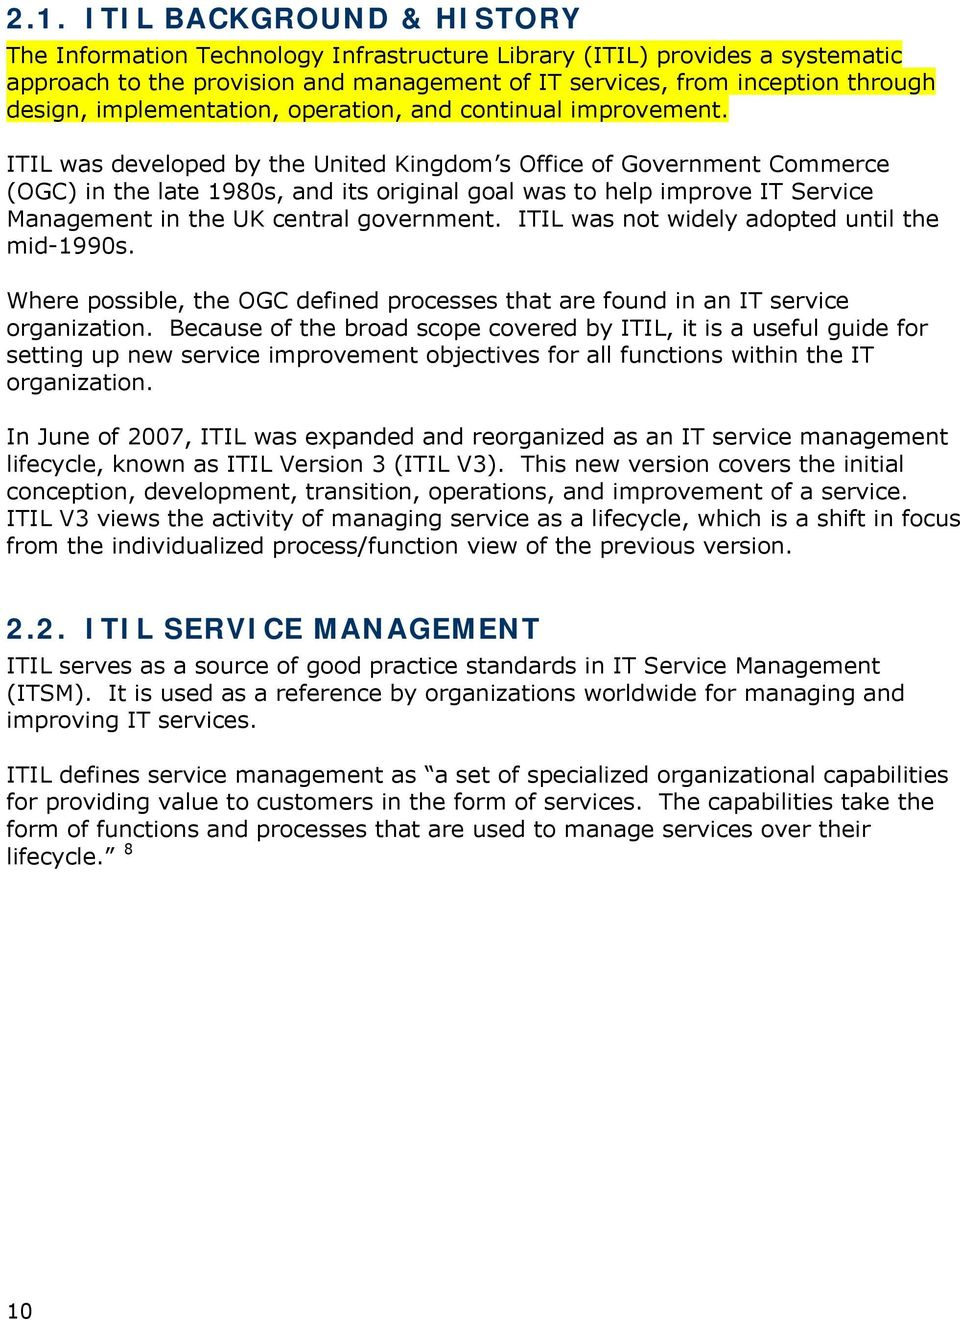 ITIL was developed by the United Kingdom s Office of Government Commerce (OGC) in the late 1980s, and its original goal was to help improve IT Service Management in the UK central government.